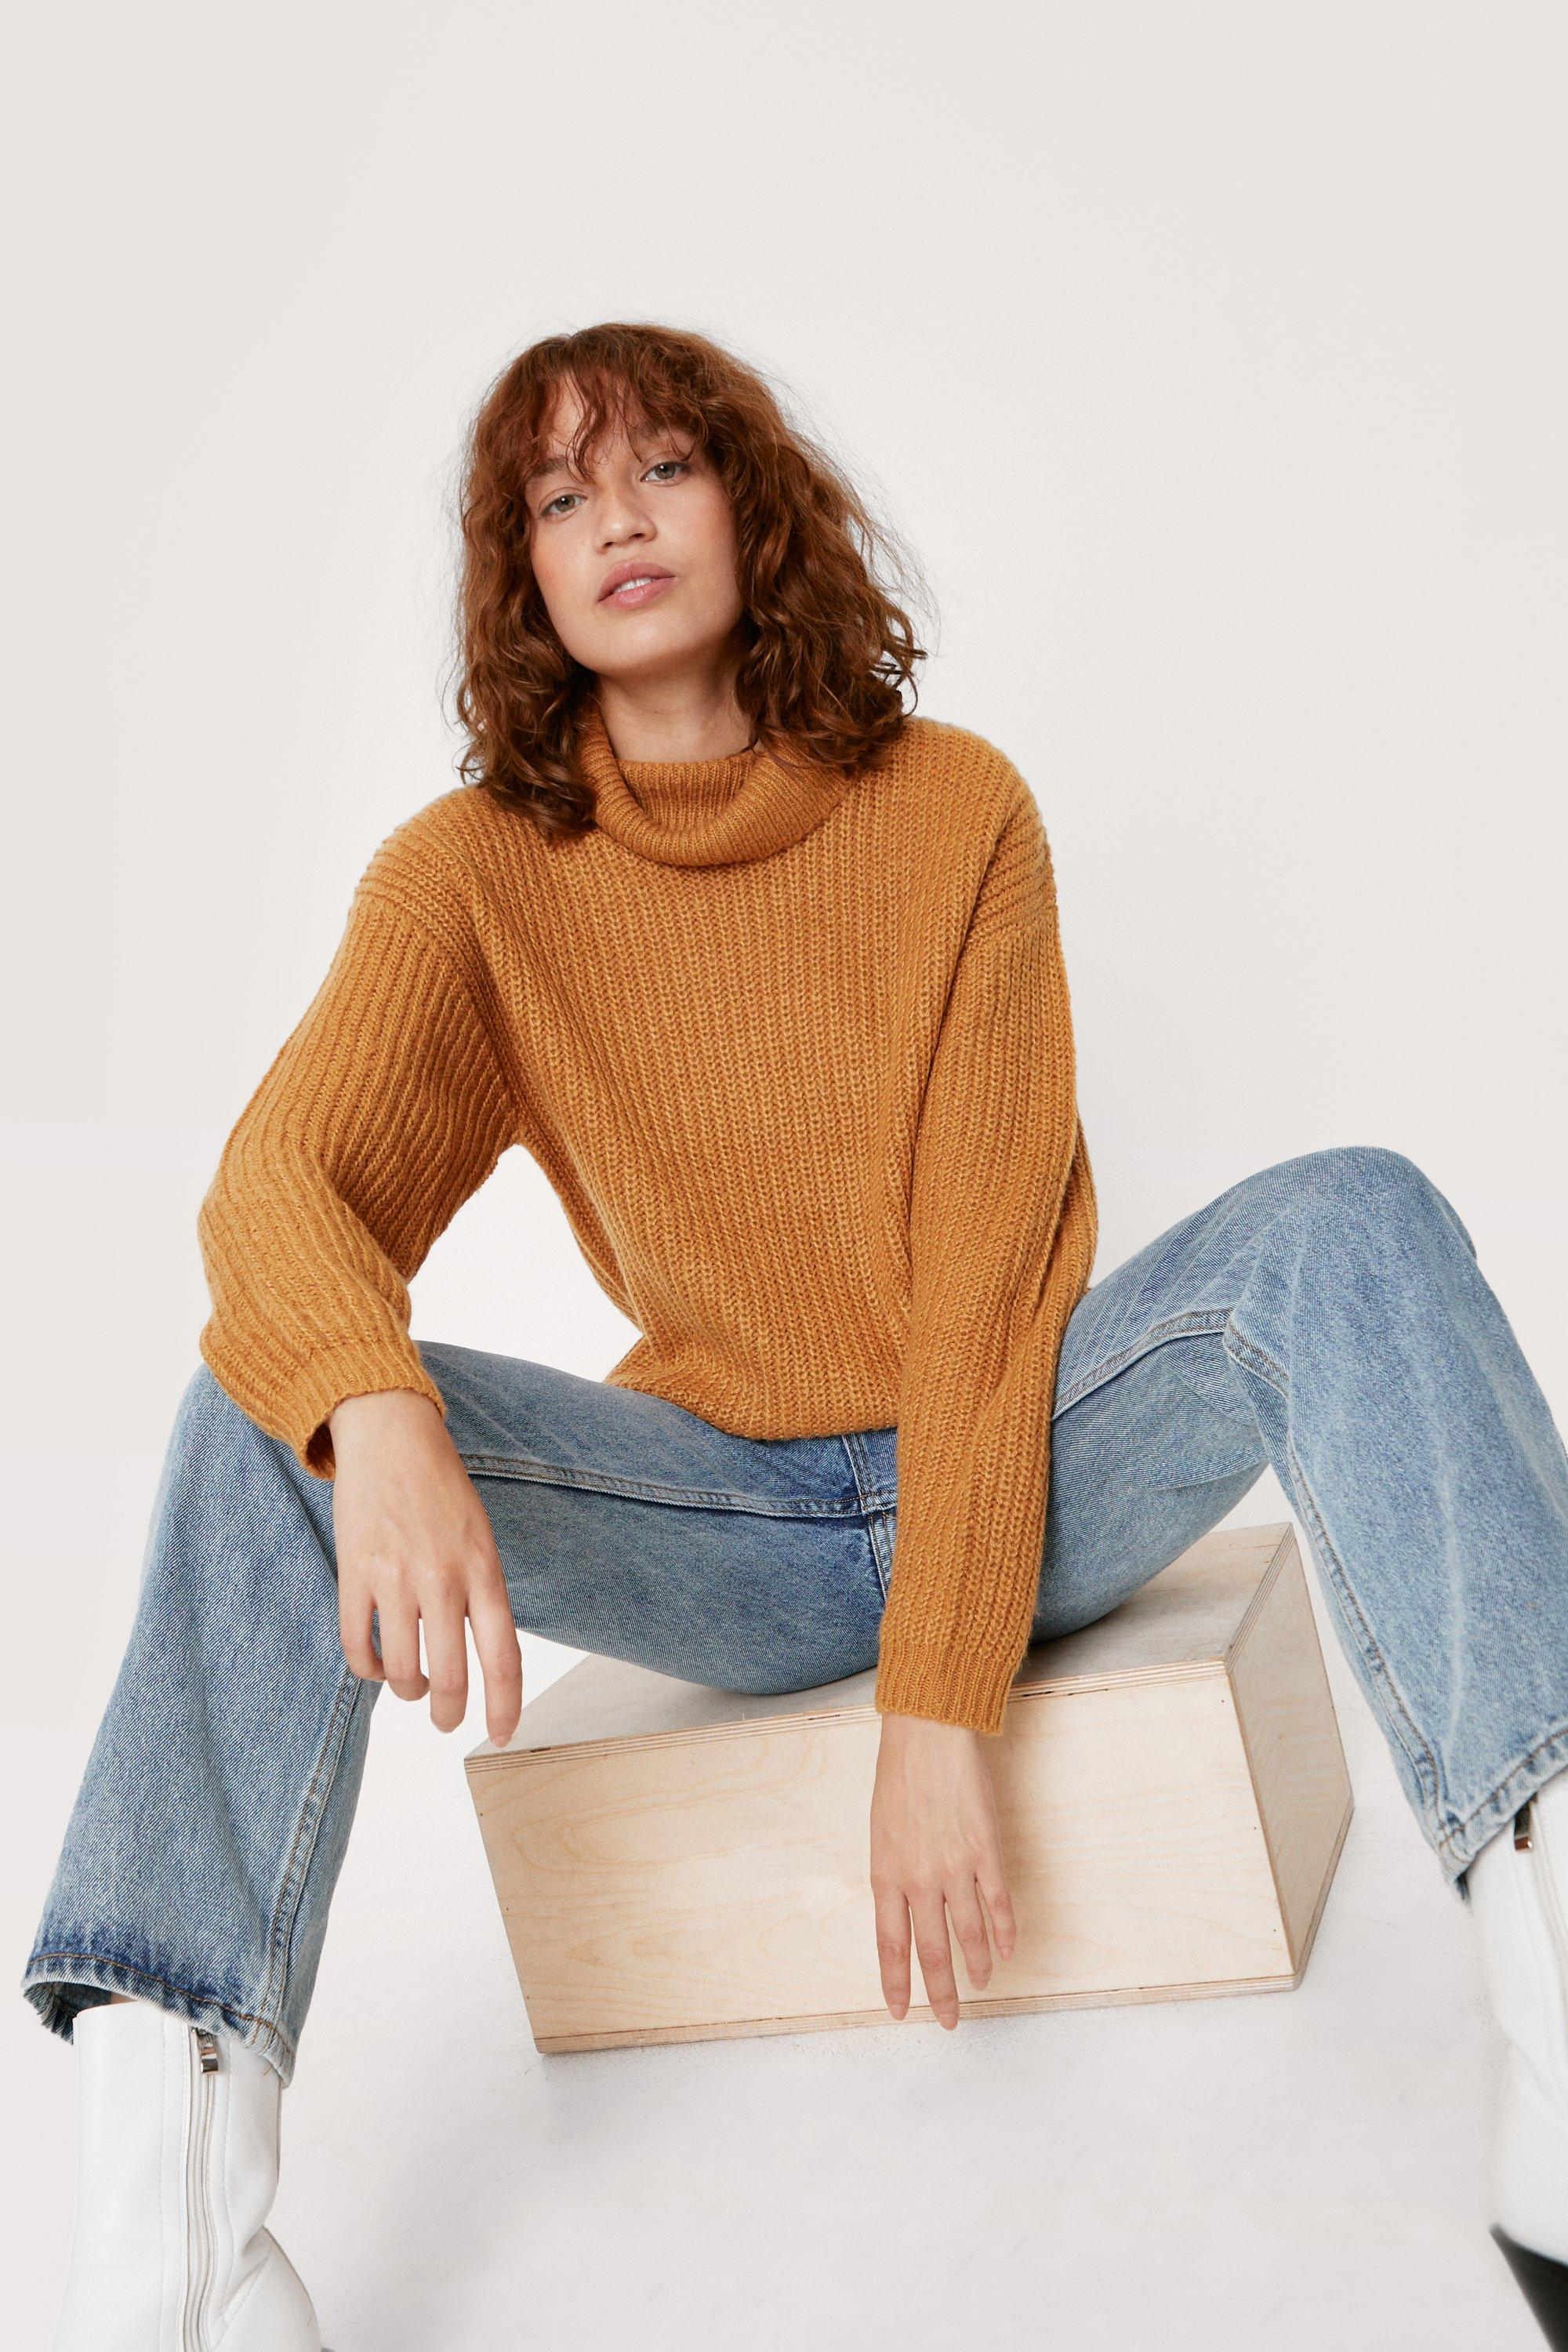 1980s Clothing, Fashion | 80s Style Clothes Womens Turtleneck Soft Knit Long Sleeve Sweater - Camel - M $23.60 AT vintagedancer.com